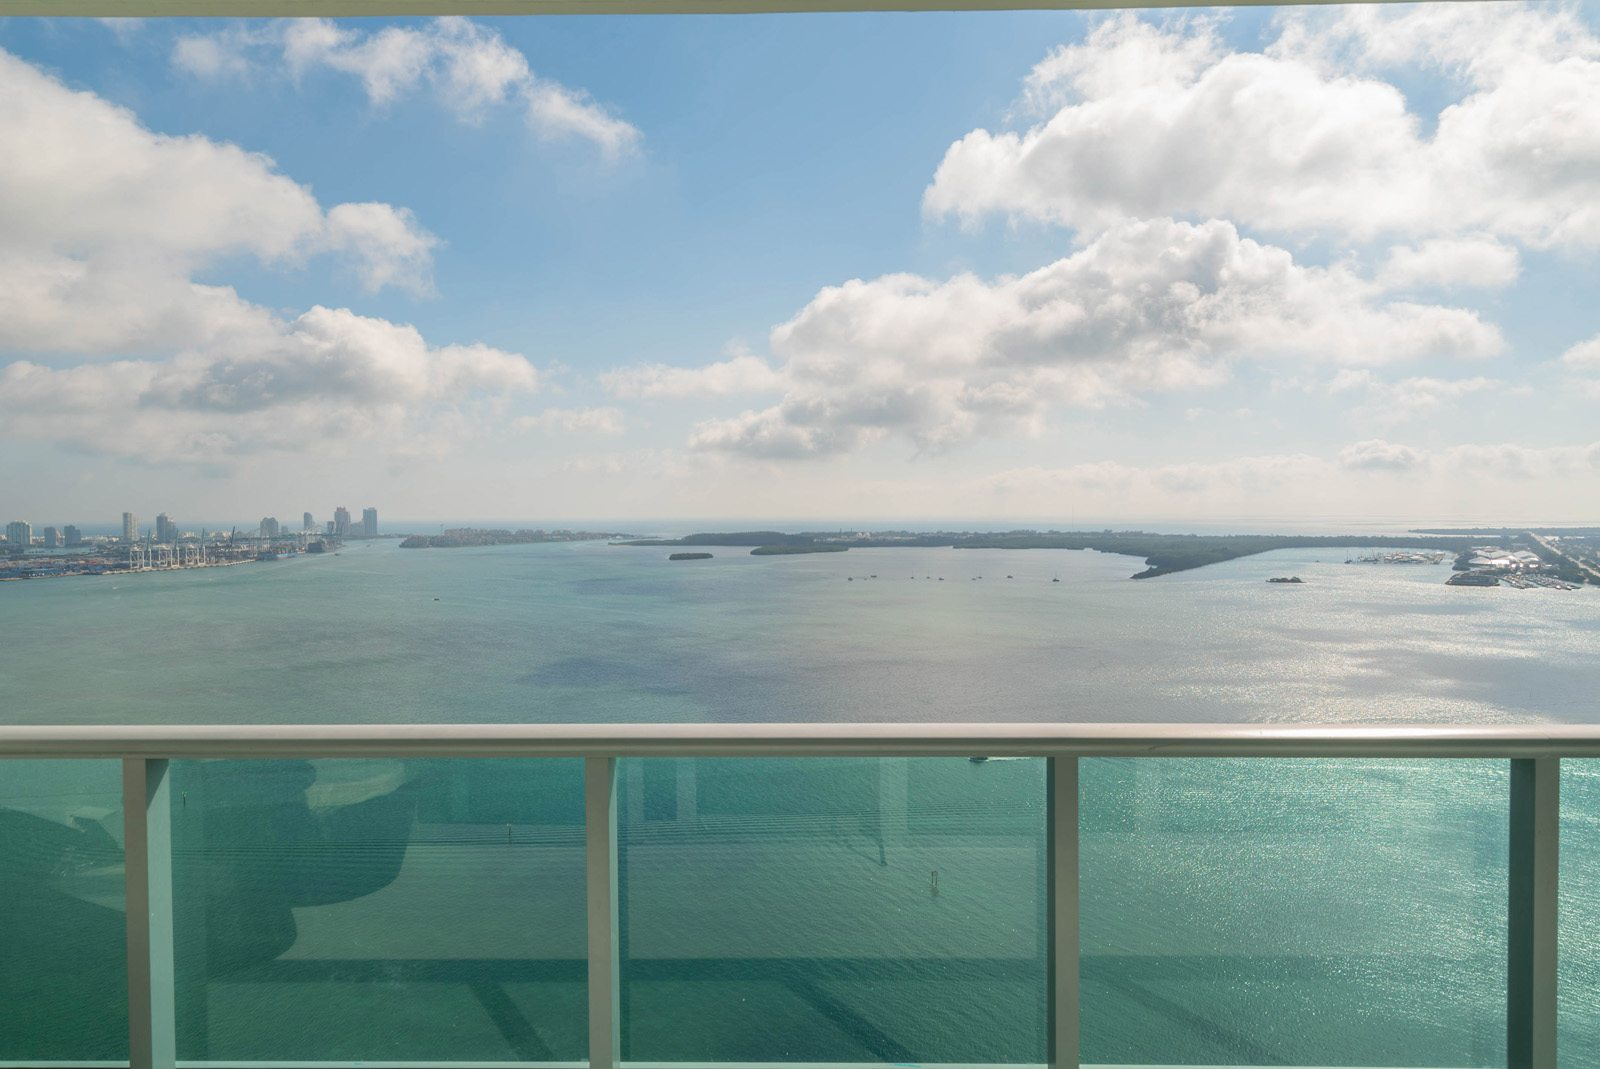 View from unit 4107 at Jade Brickell